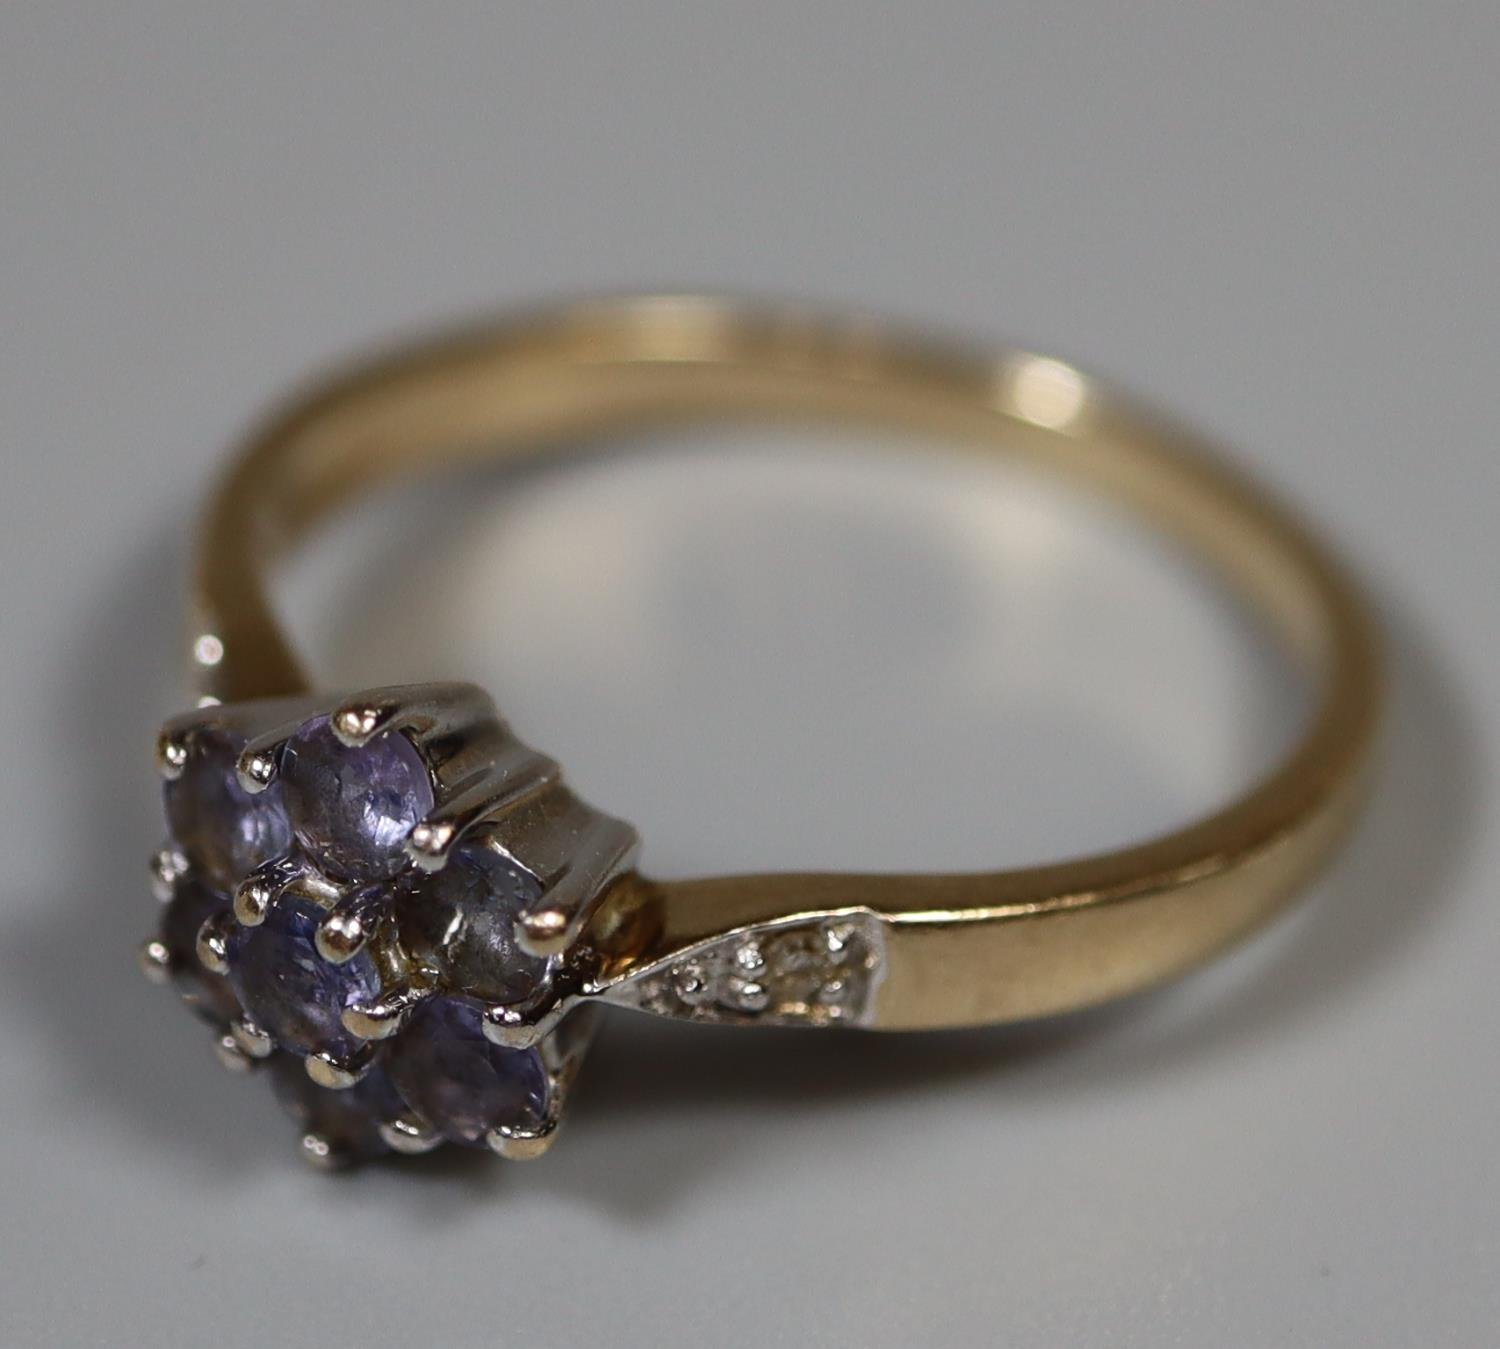 9ct gold cluster ring of pale blue stones with diamond shoulders. Ring size O. Approx weight 2.5 - Image 3 of 3